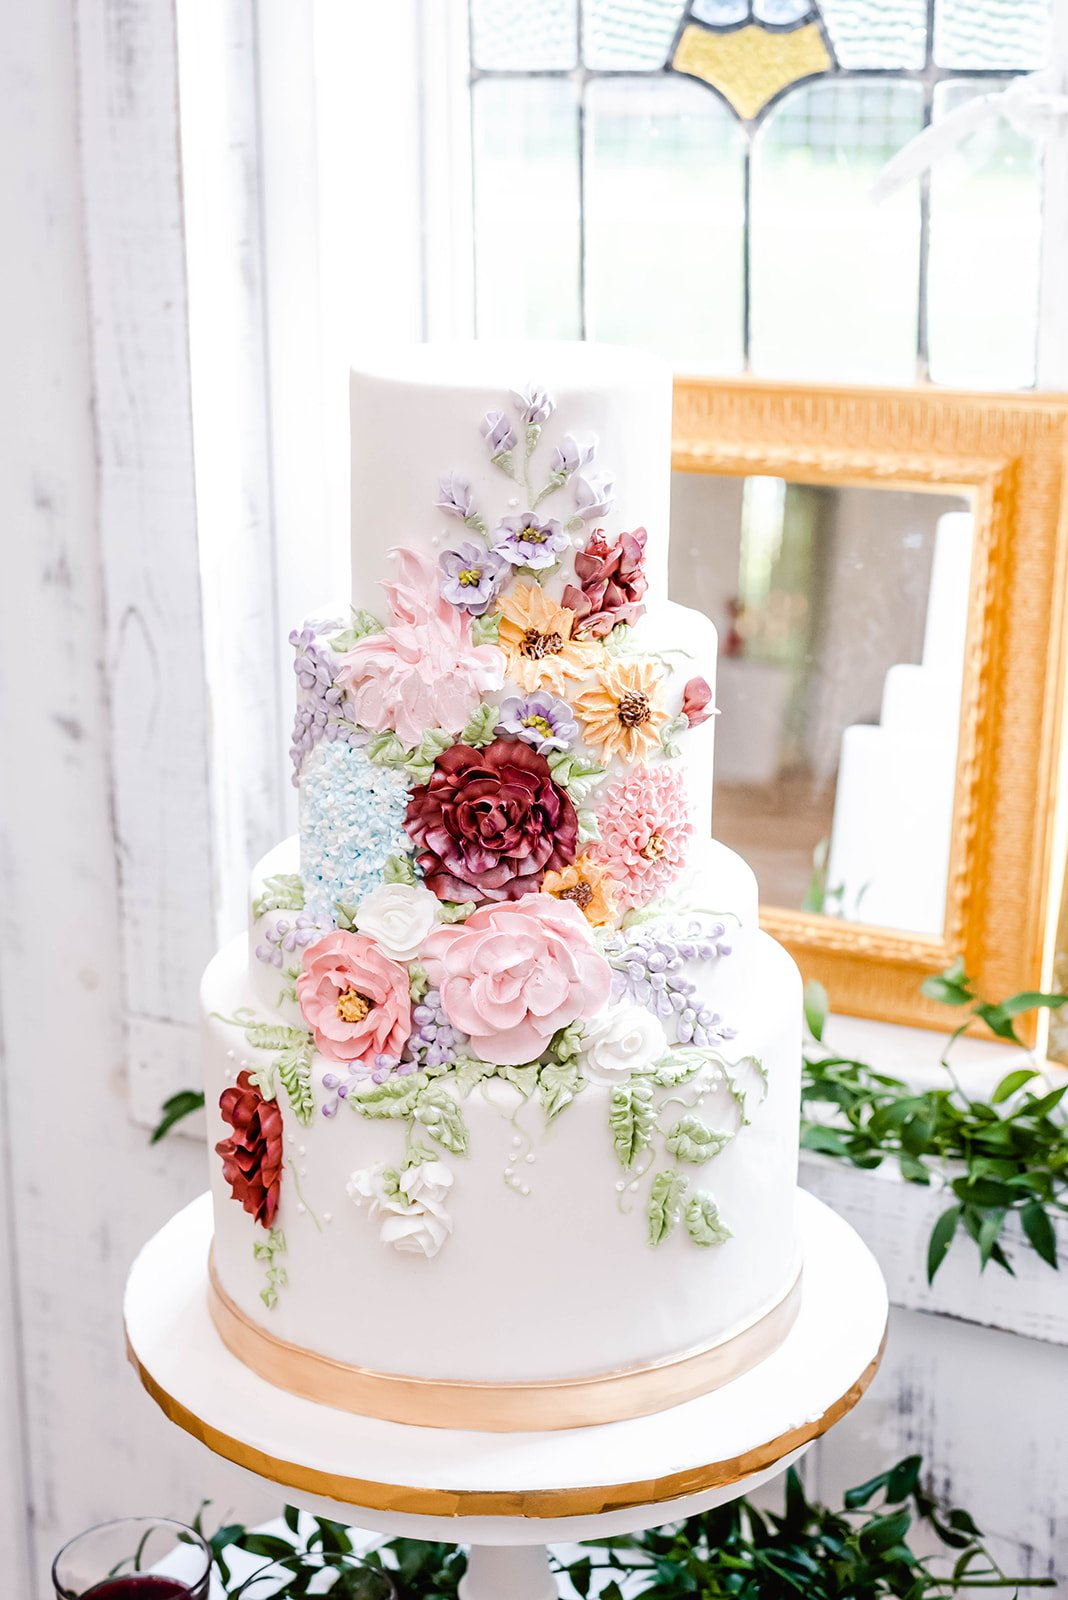 Creations Cakes